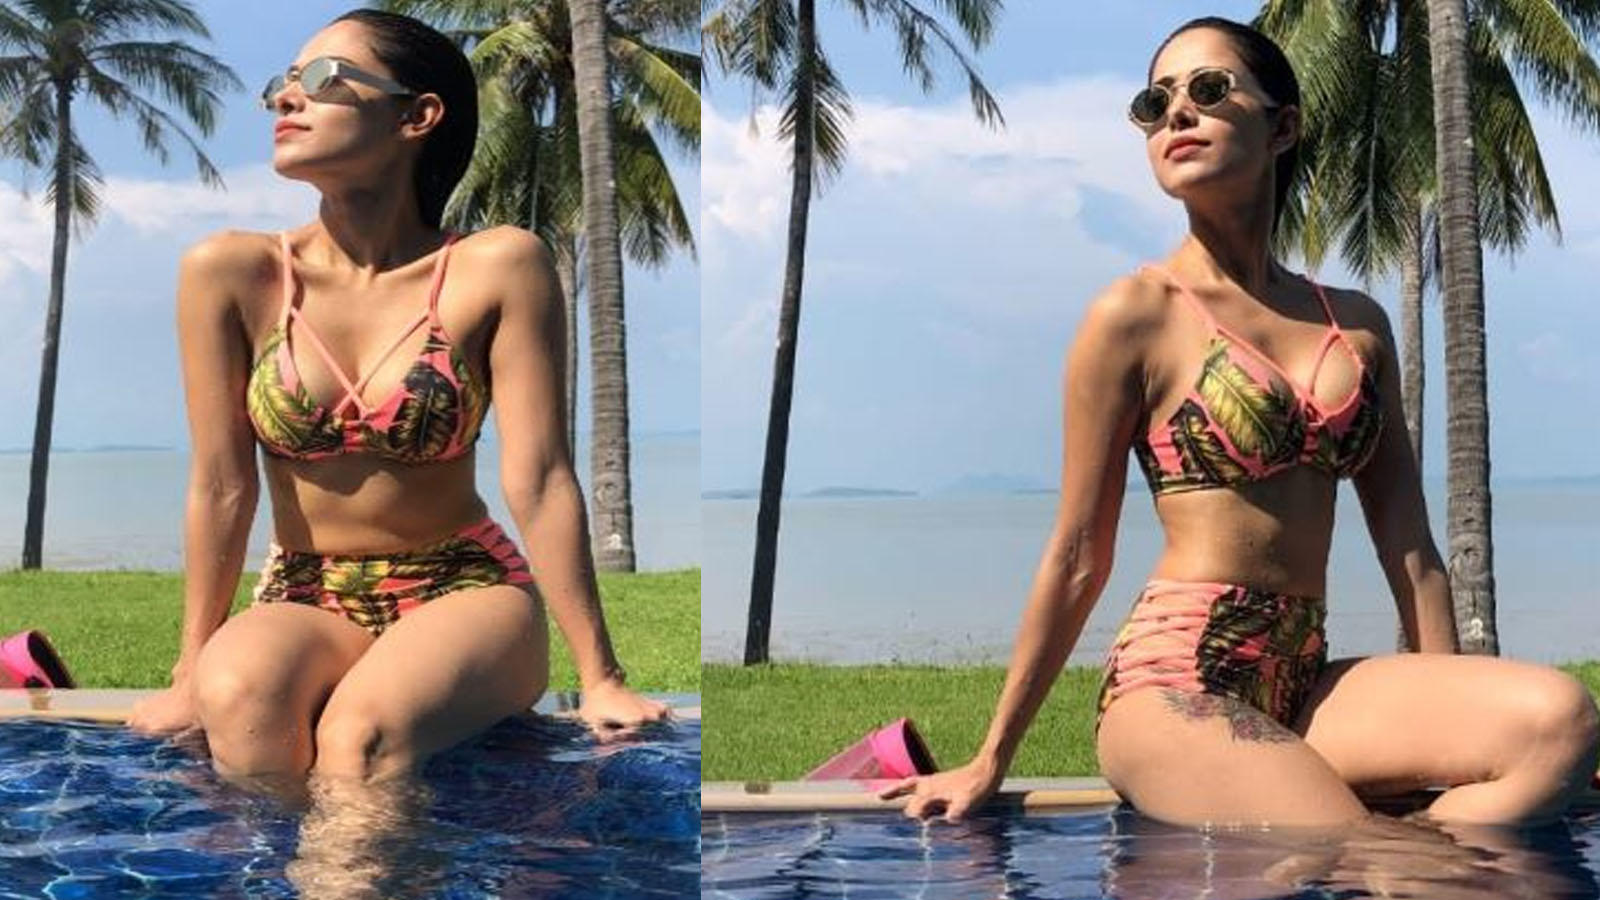 Hotness Alert! Nushrat Bharucha's latest photographs in green and pink bikini are turning up the heat in cyberspace